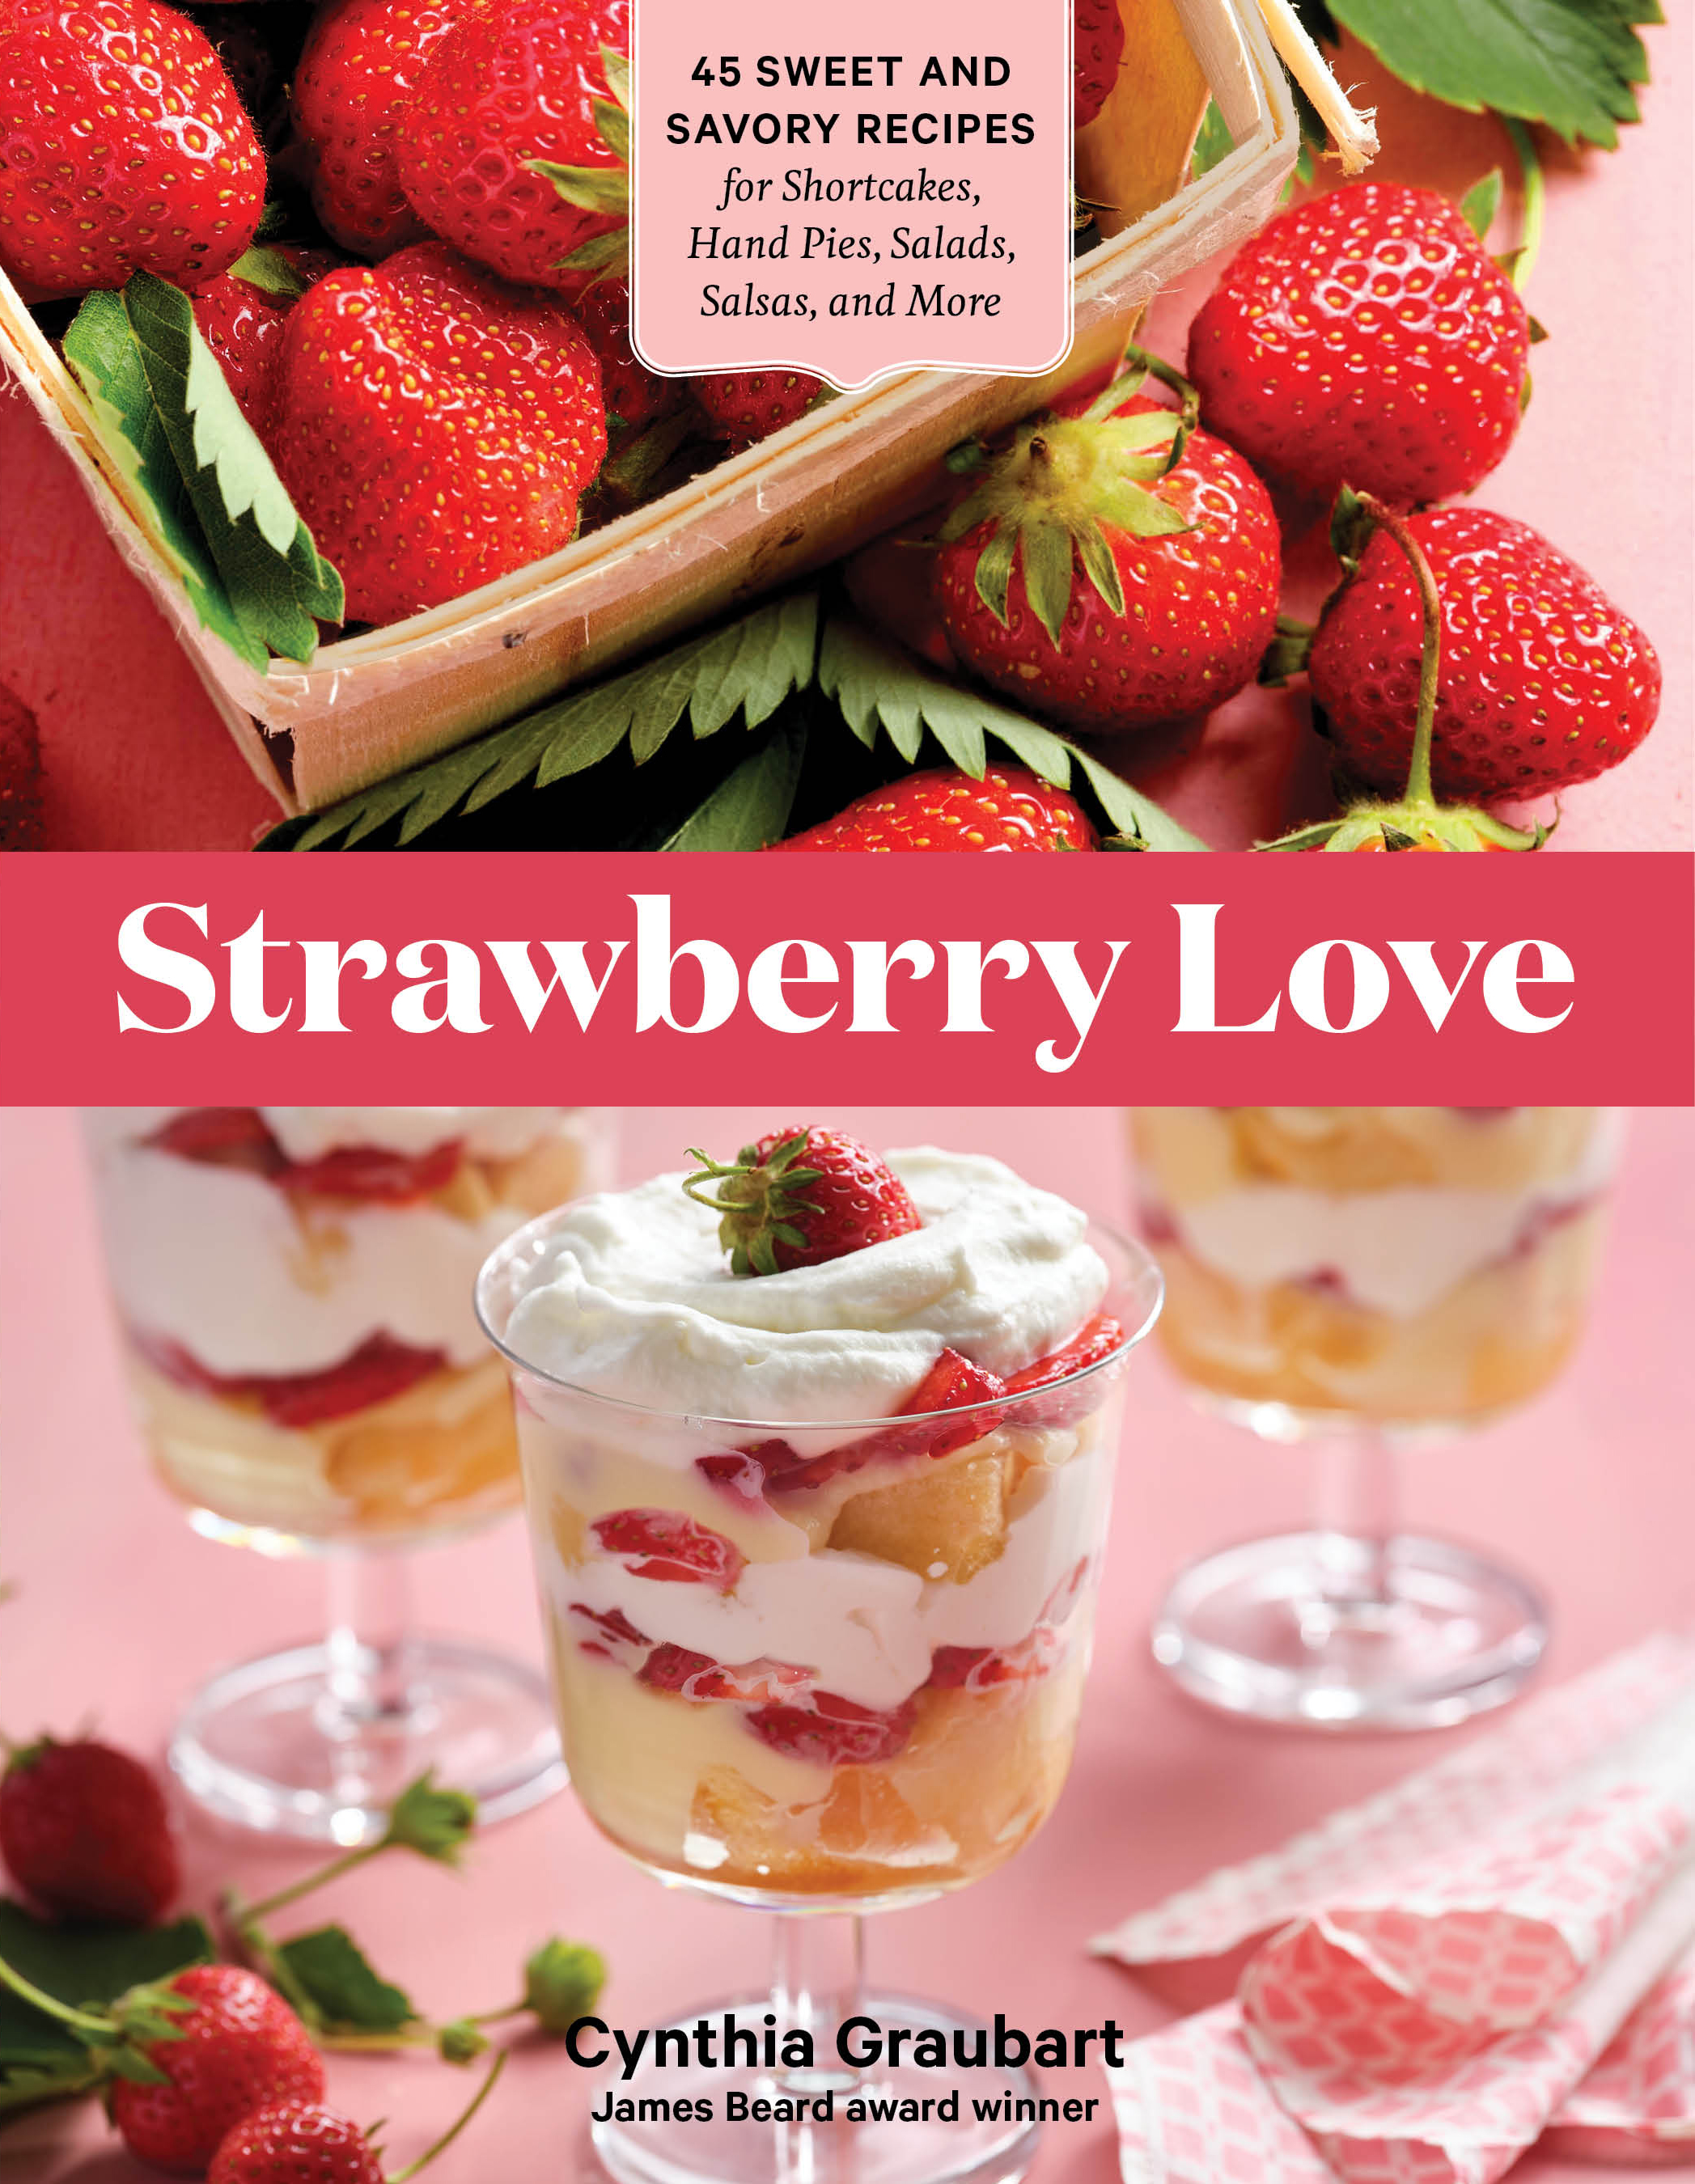 Strawberry Love 45 Sweet and Savory Recipes for Shortcakes, Hand Pies, Salads, Salsas, and More - Cynthia Graubart